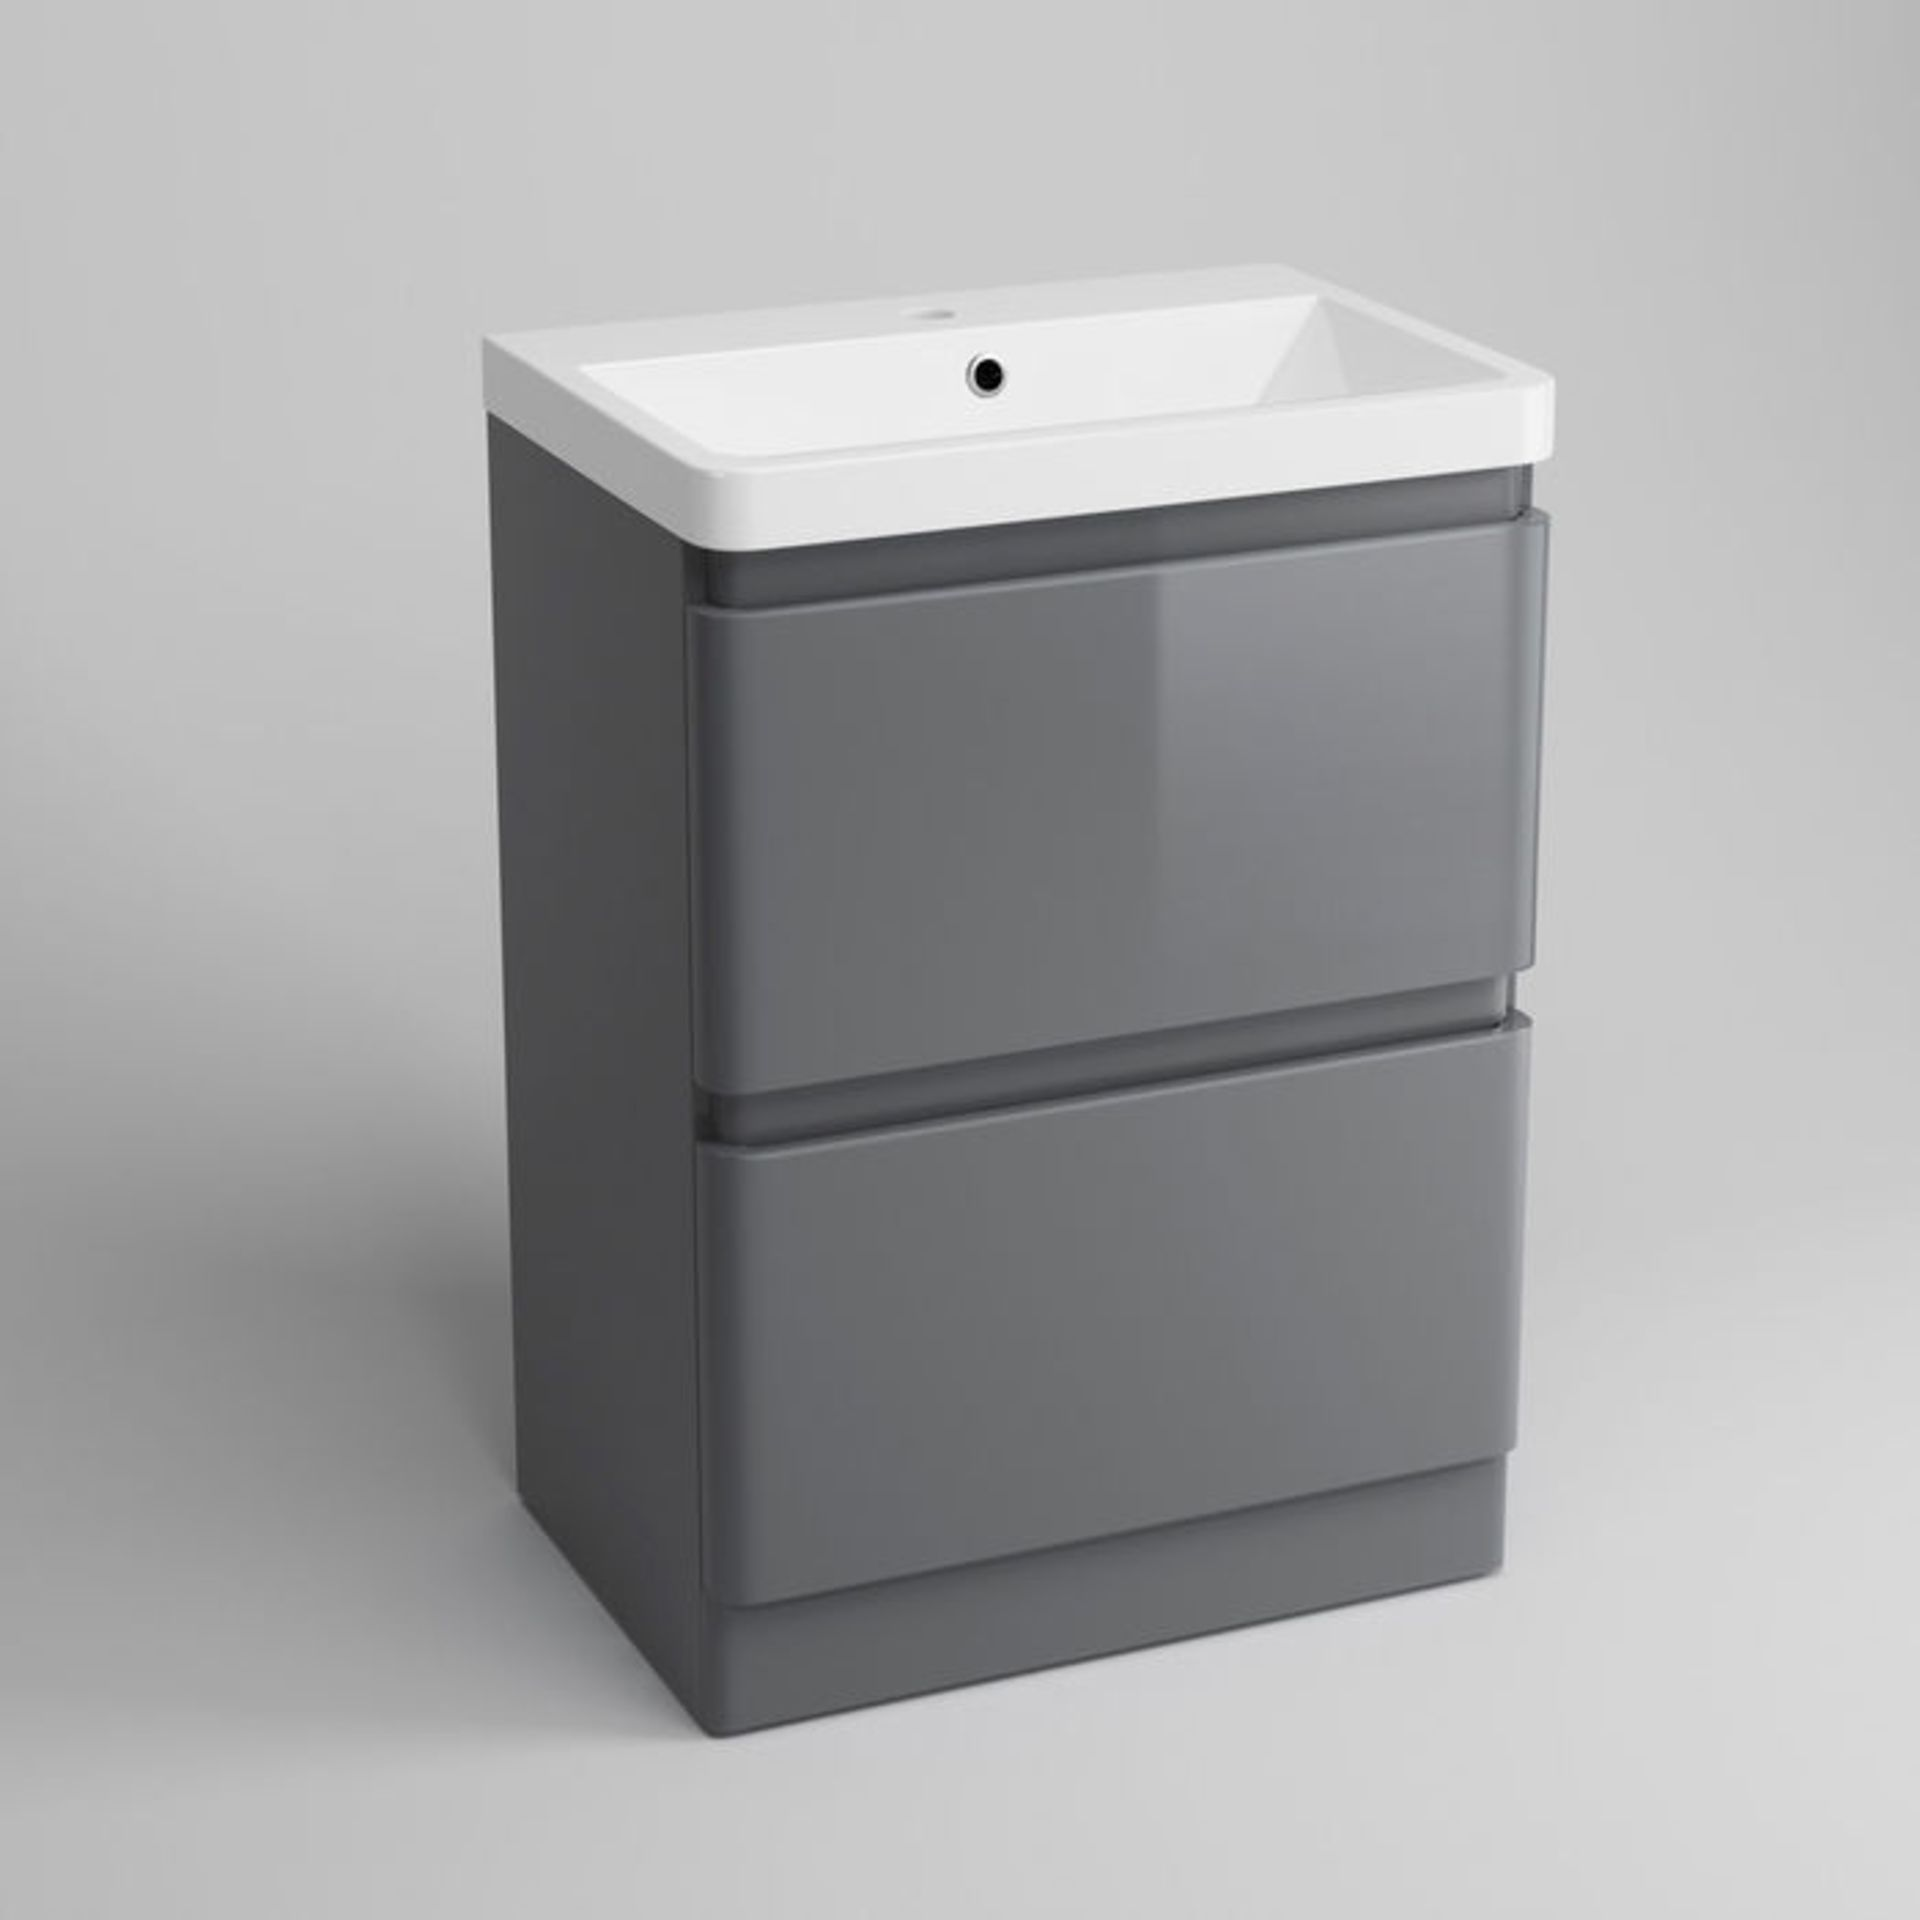 Lot 3 - (XX3) 600mm Denver Gloss Grey Built In Sink Drawer Unit - Floor Standing. RRP £499.99. Comes c...